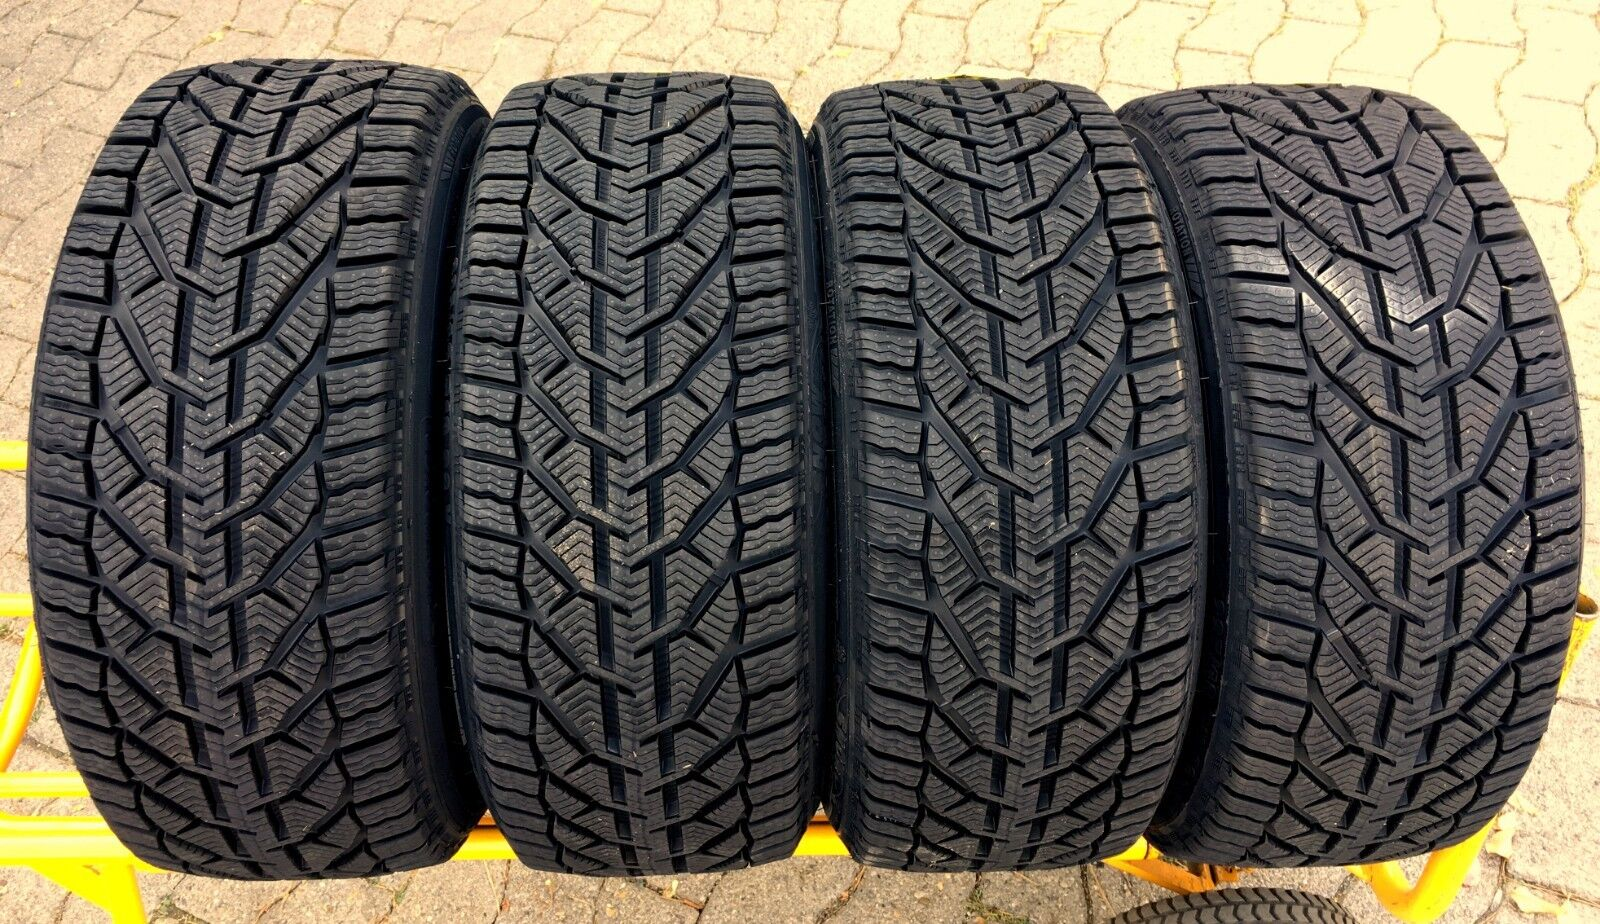 4x 225/50 R17 98V XL KORMORAN by Michelin SNOW Winterreifen Winter Reifen NEU ◄